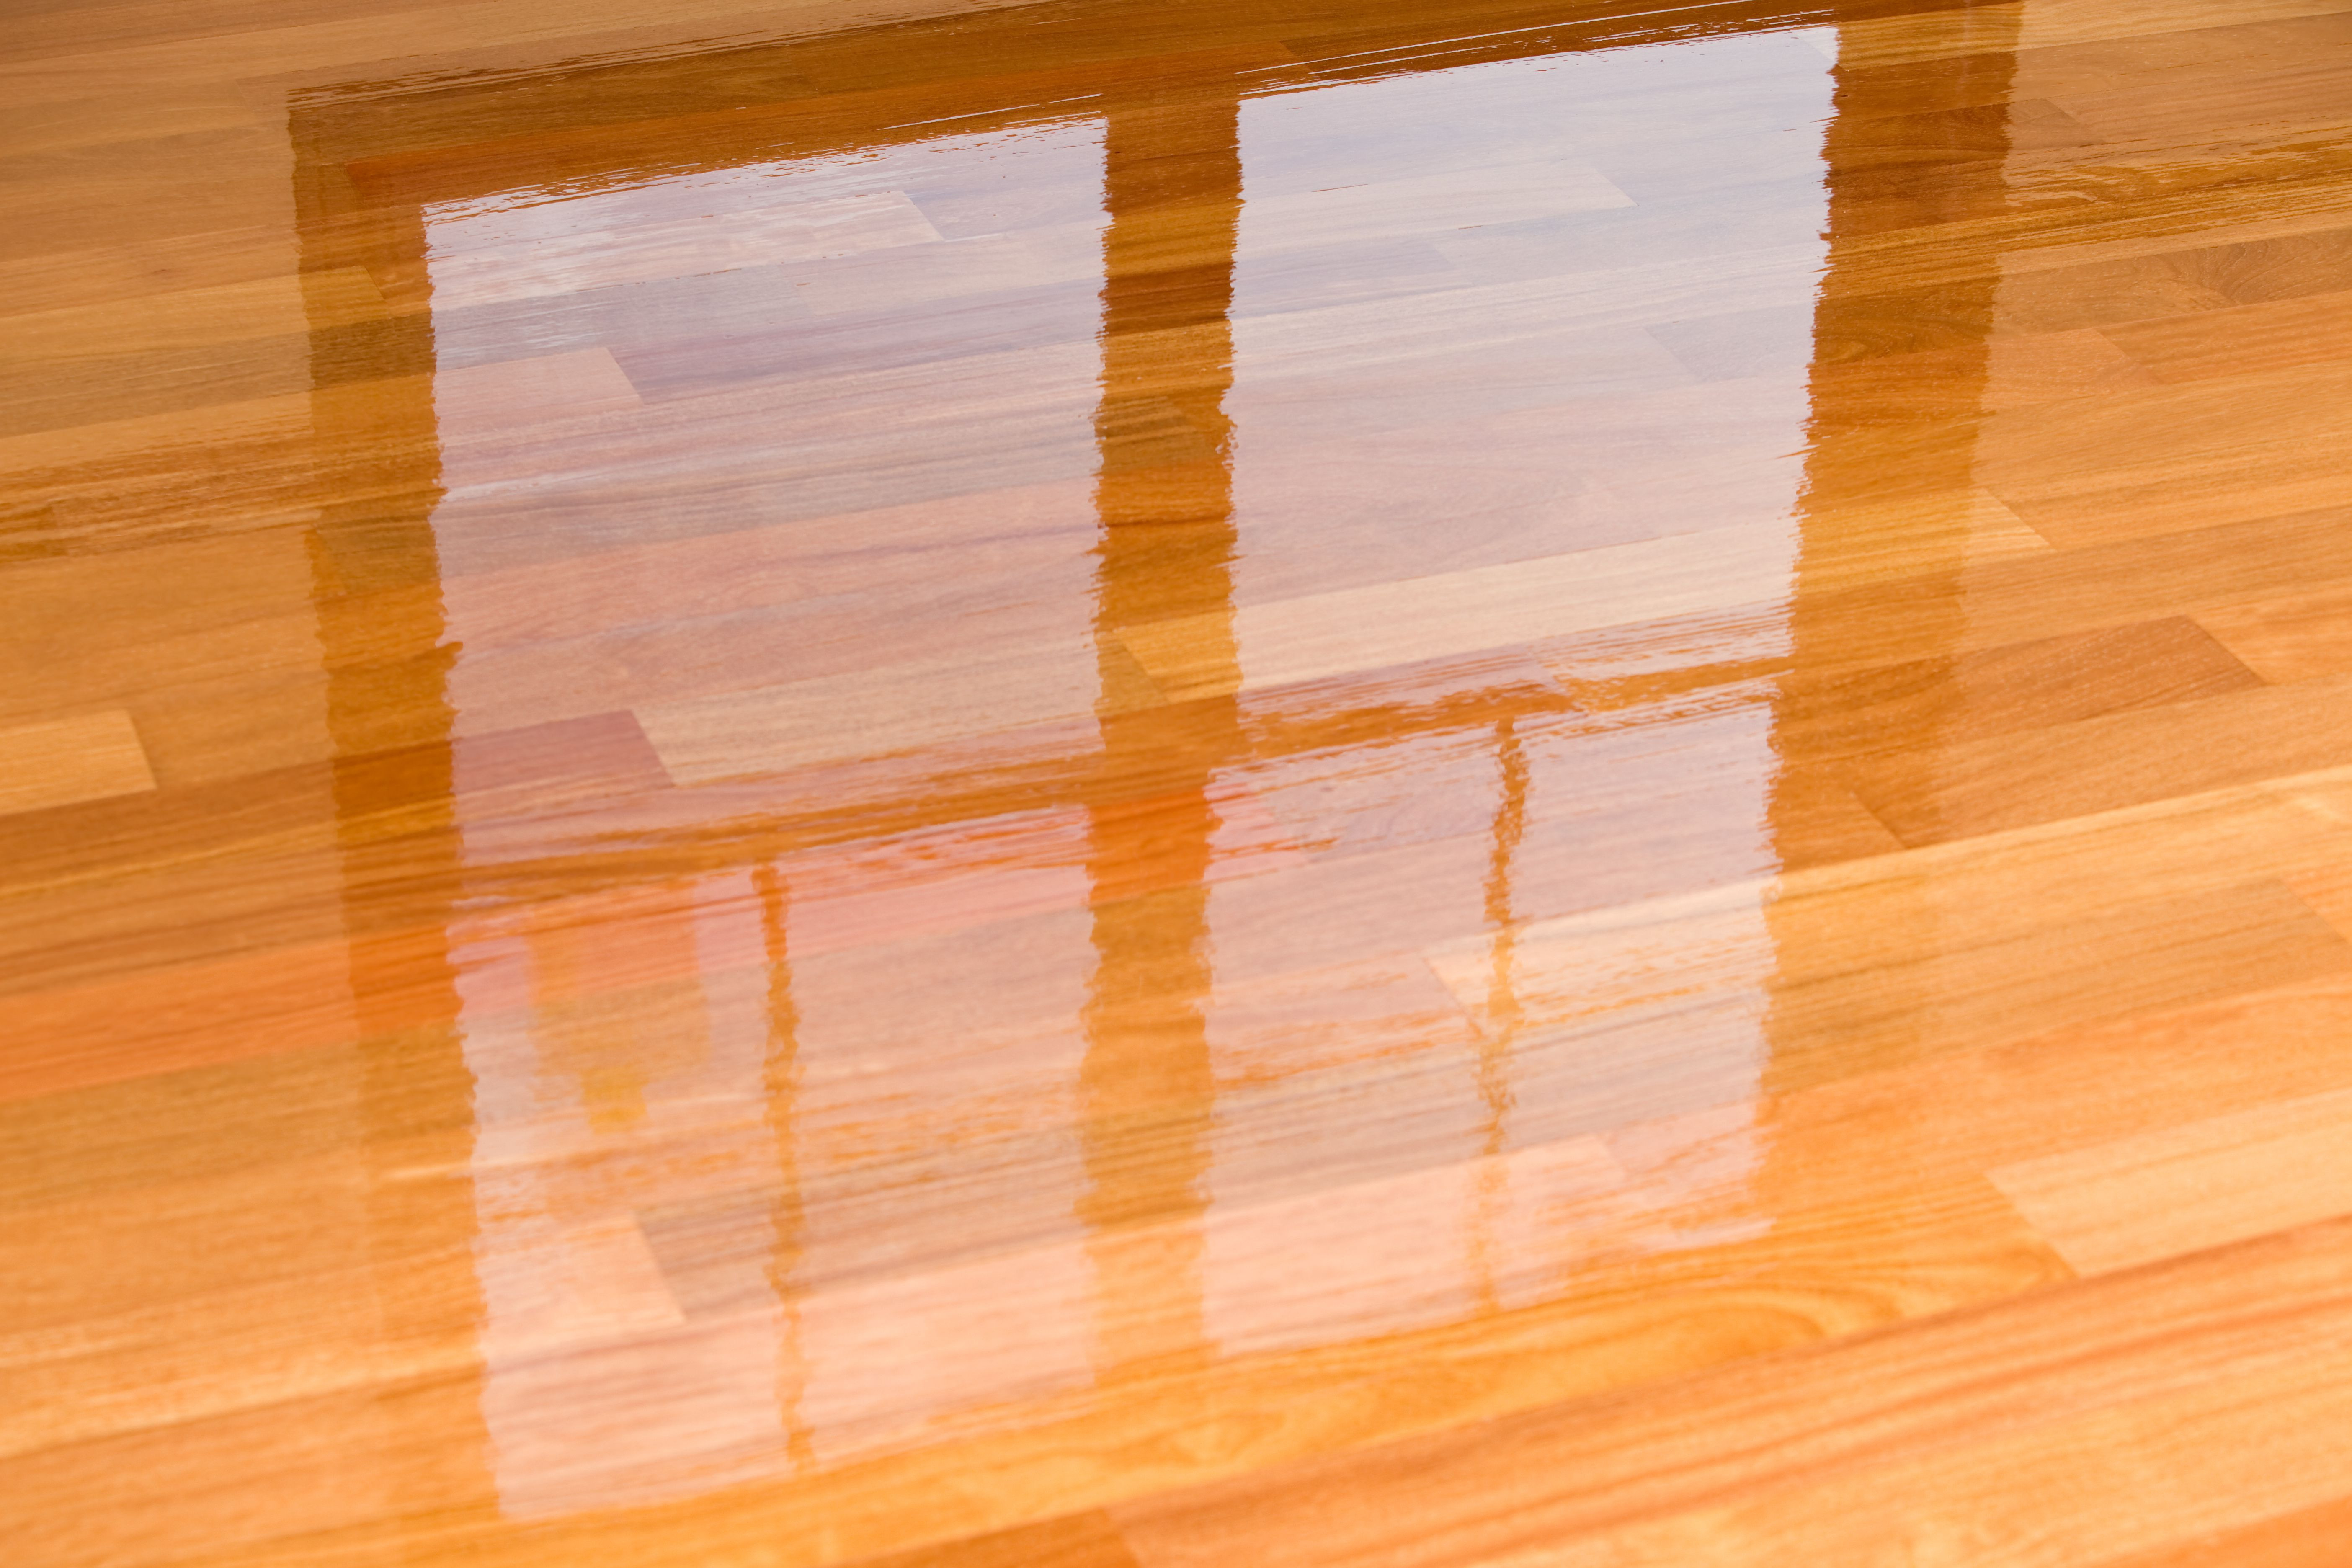 laminate hardwood floor cleaner of guide to laminate flooring water and damage repair throughout wet polyurethane on new hardwood floor with window reflection 183846705 582e34da3df78c6f6a403968